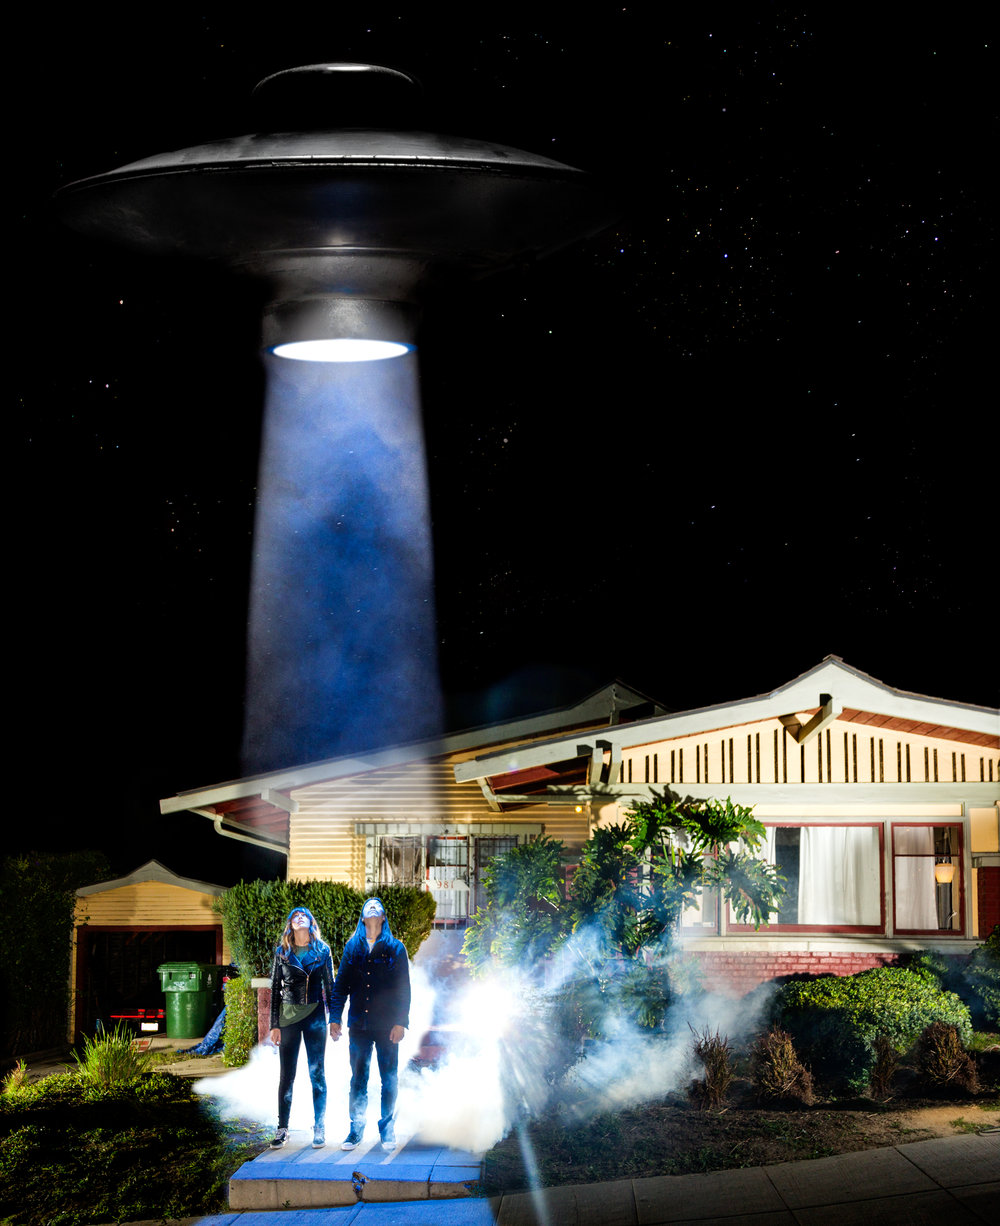 01-Nuge_UFO_A98A1643_flat-Broach-Photo.jpg